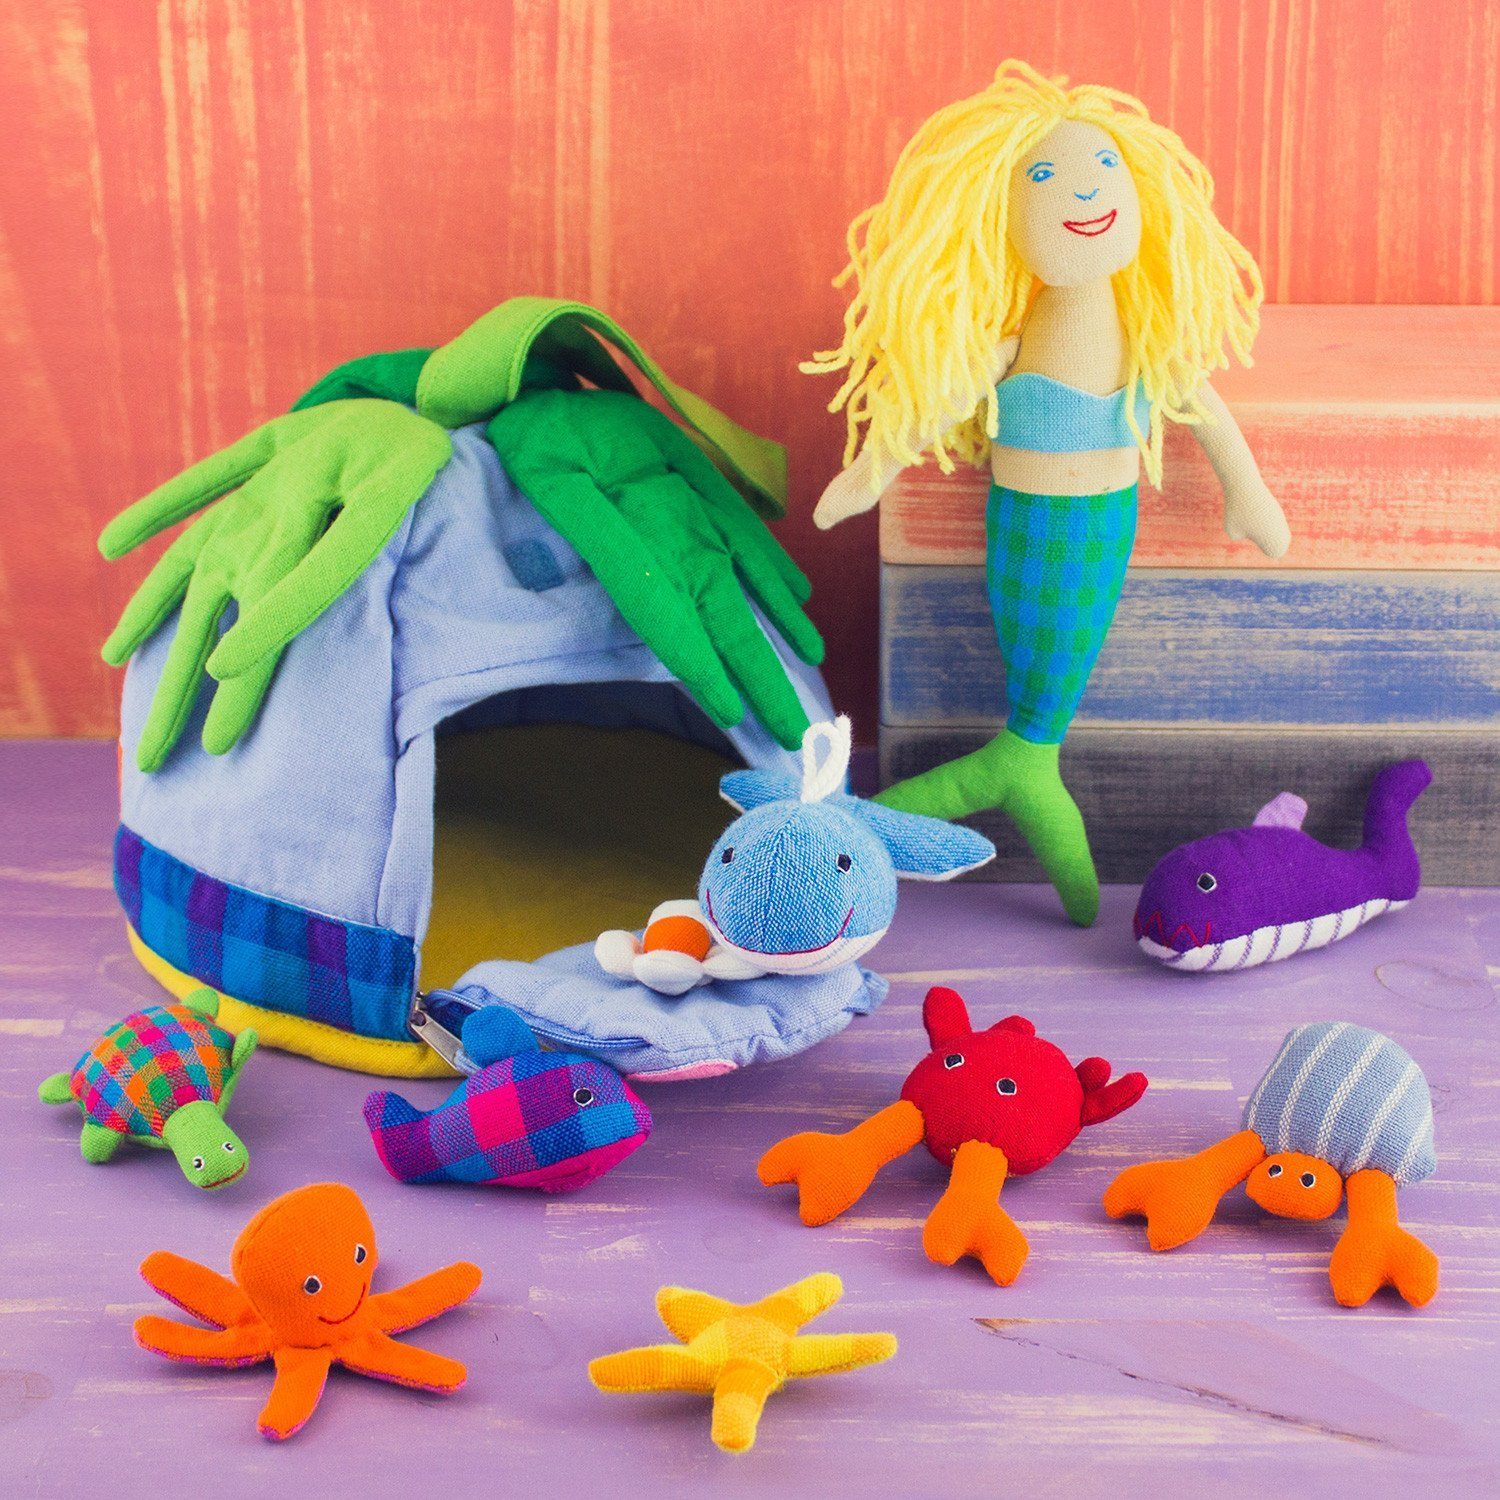 Mermaid Playhouse Plush Set